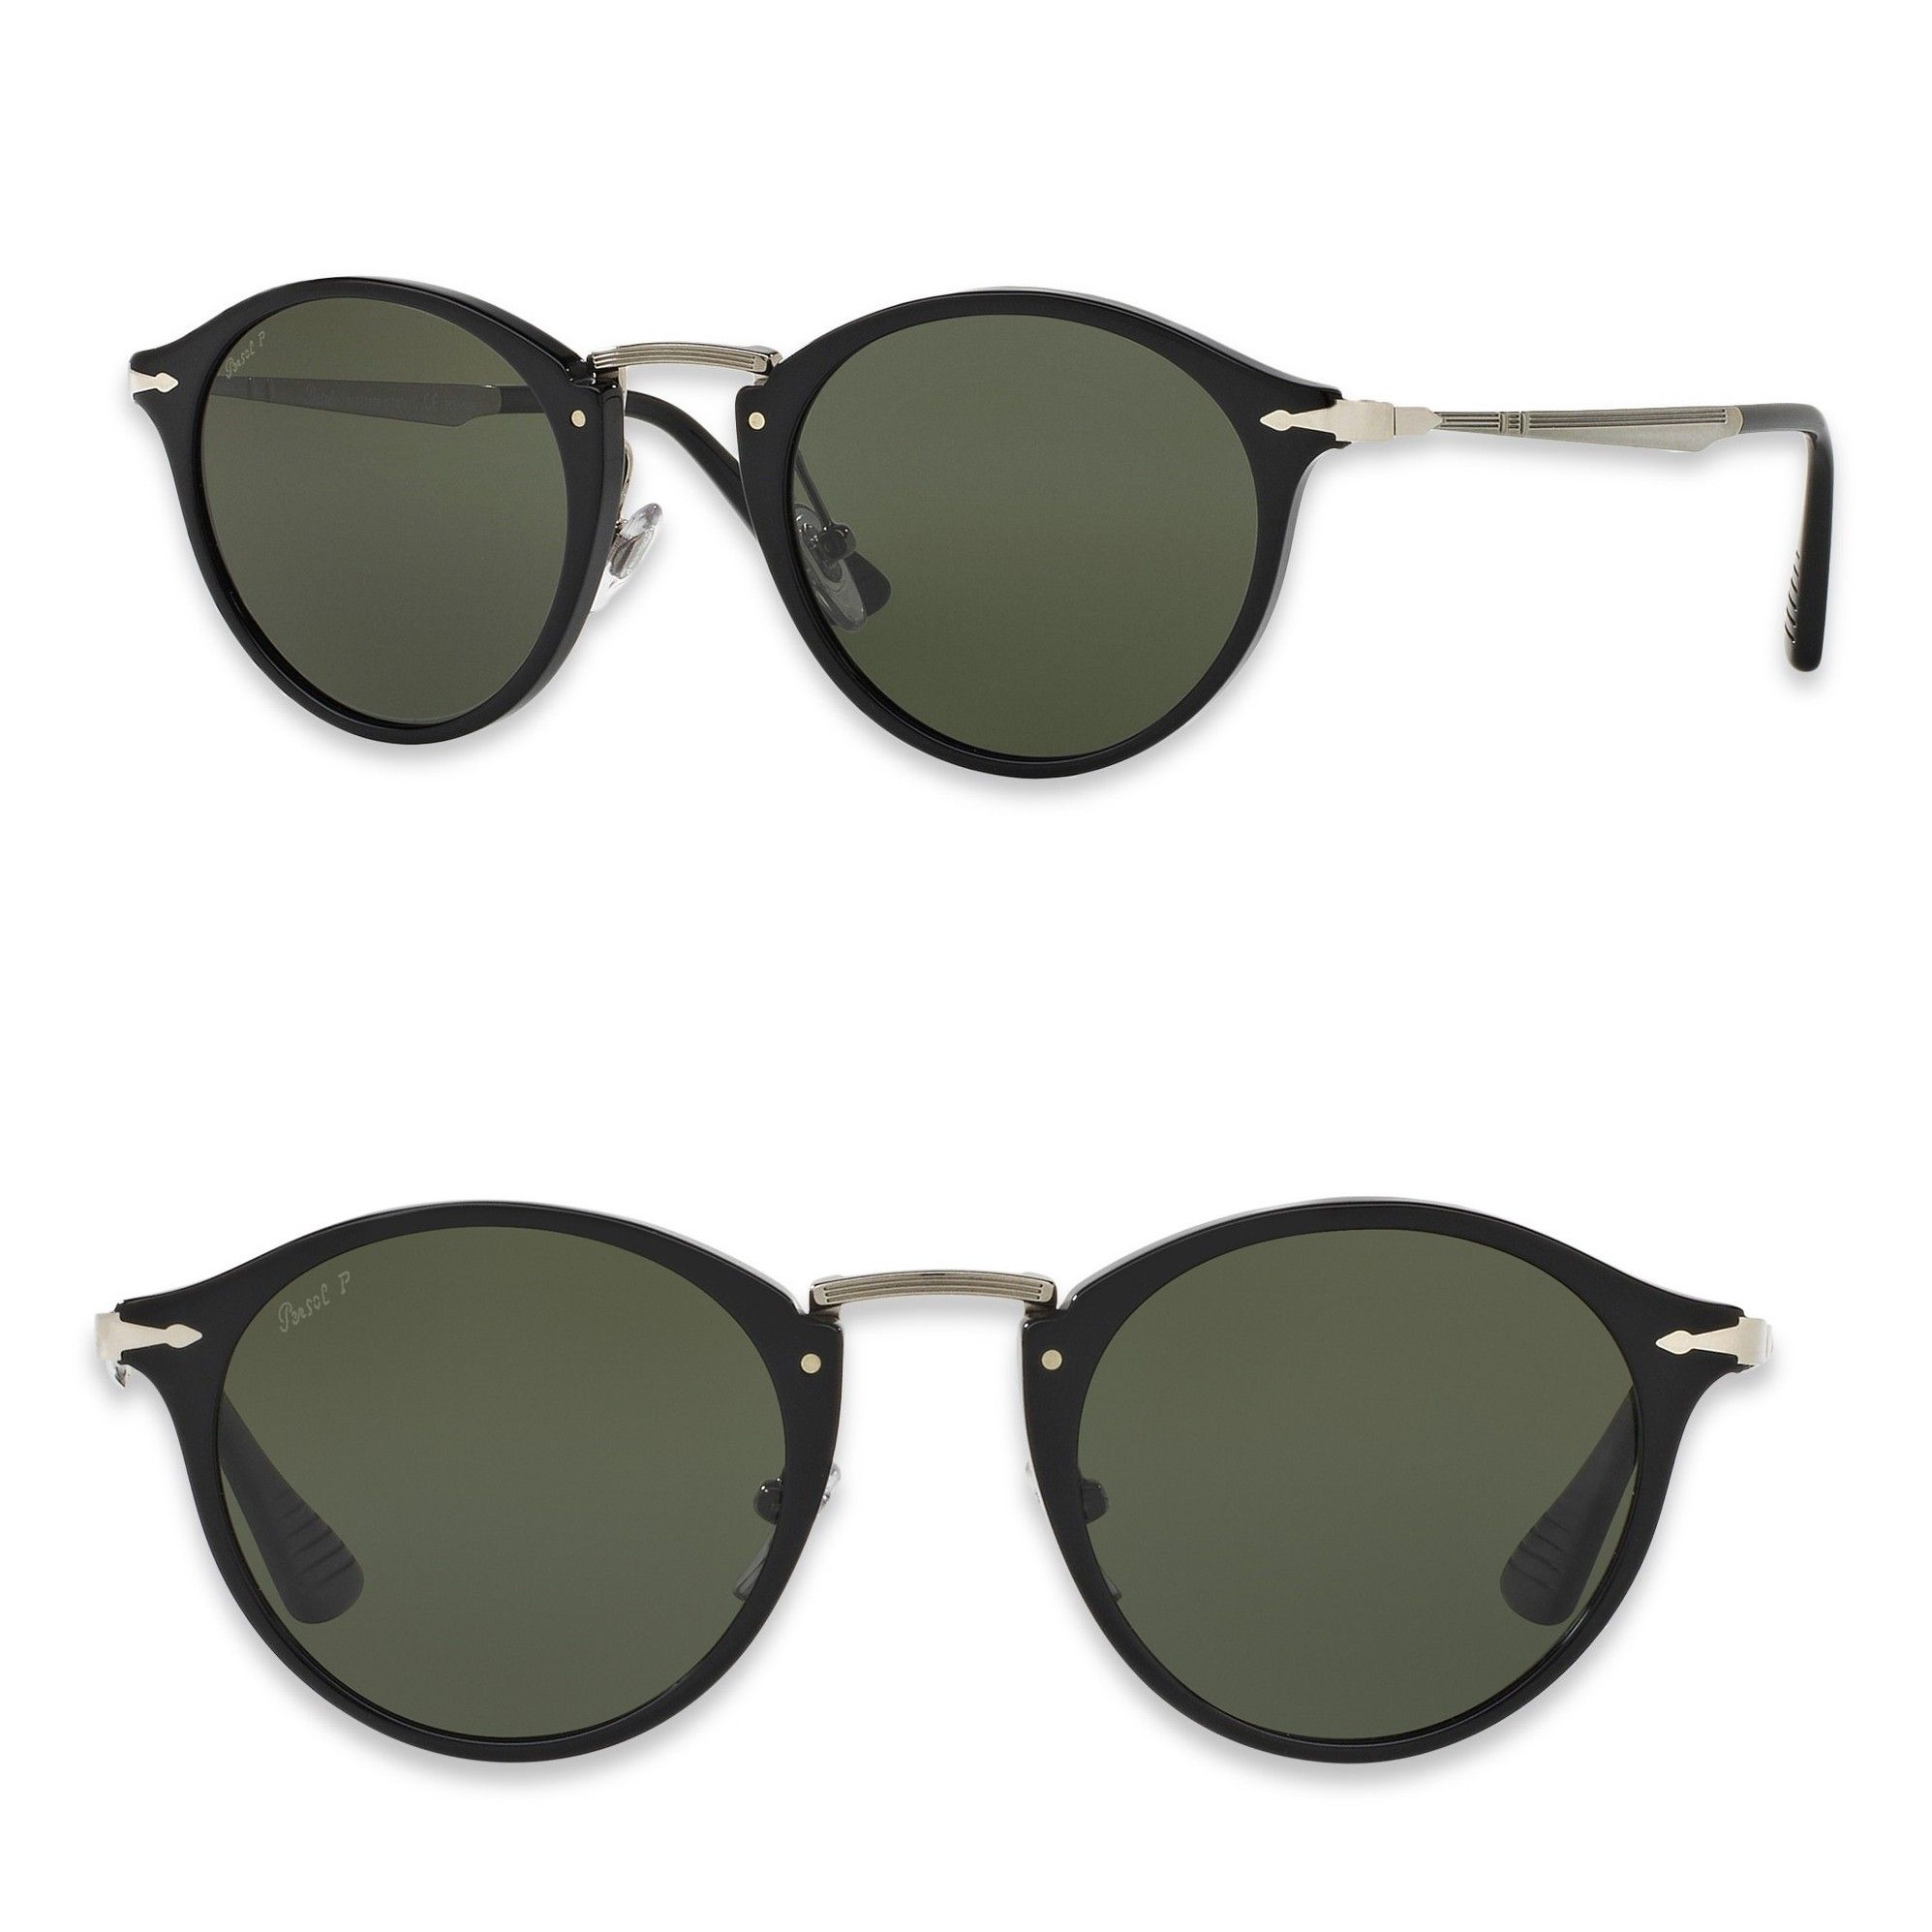 05bff166af PERSOL CALLIGRAPHER 51MM POLARIZED PHANTOS SUNGLASSES.  persol  all ...